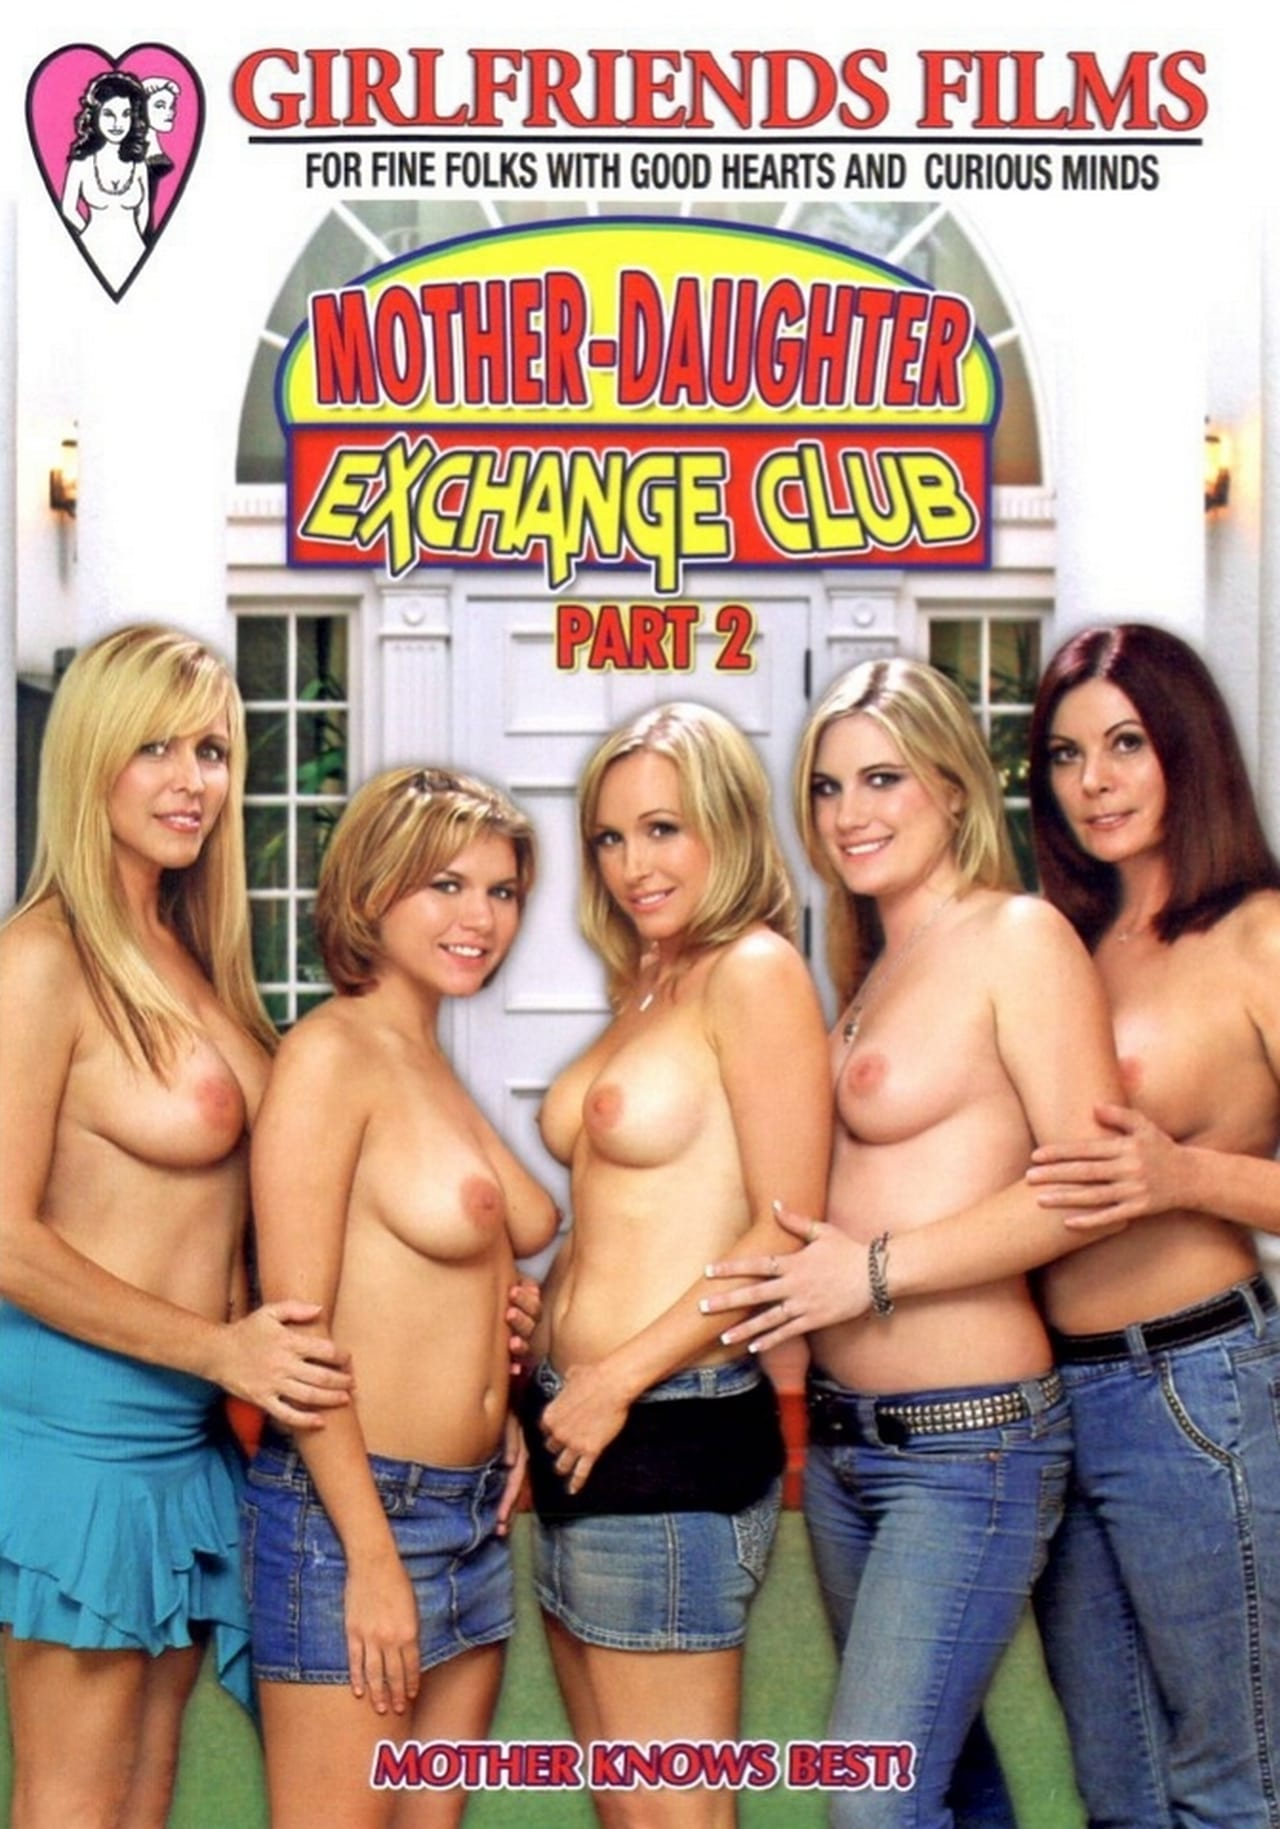 Mother-Daughter Exchange Club 2